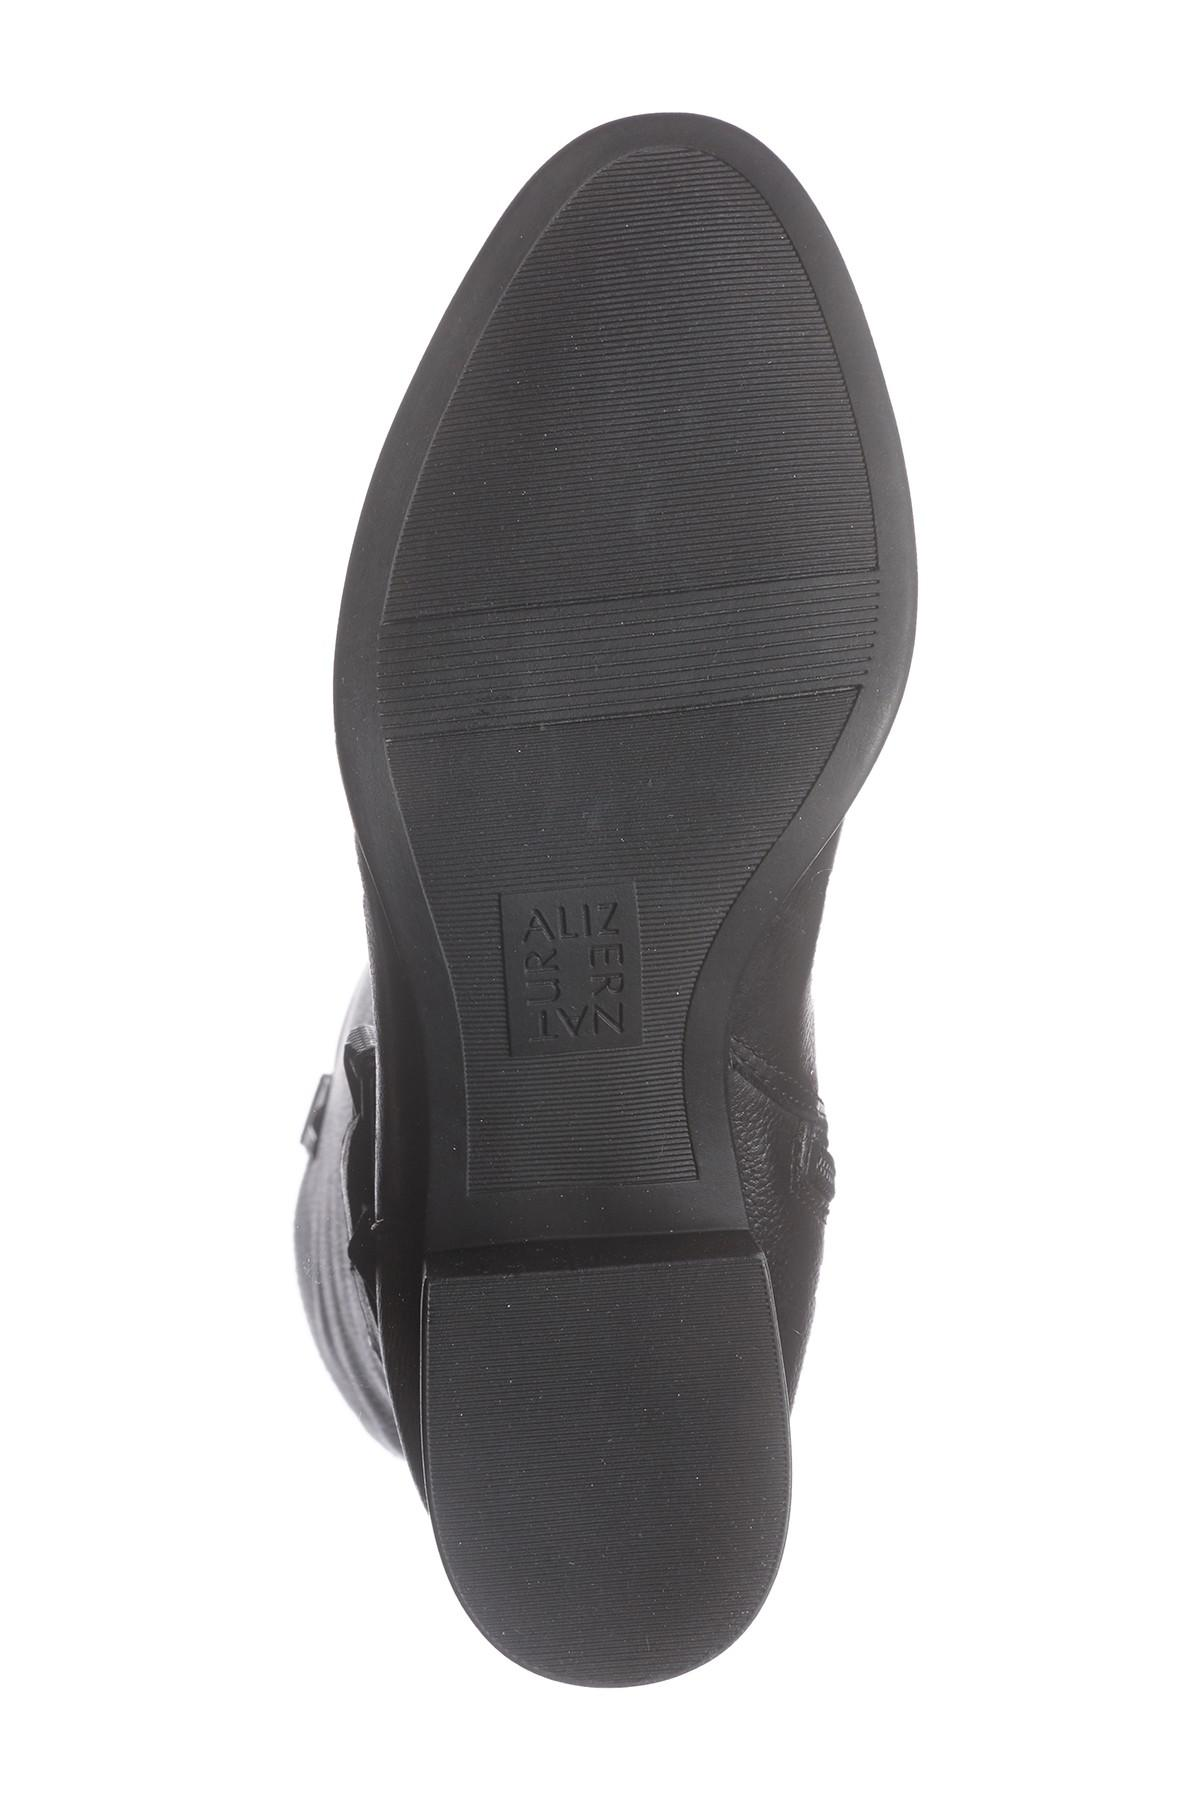 fa3ab570b580 Naturalizer - Black Kim Ankle Strap Leather Boot - Wide Width Available -  Lyst. View fullscreen